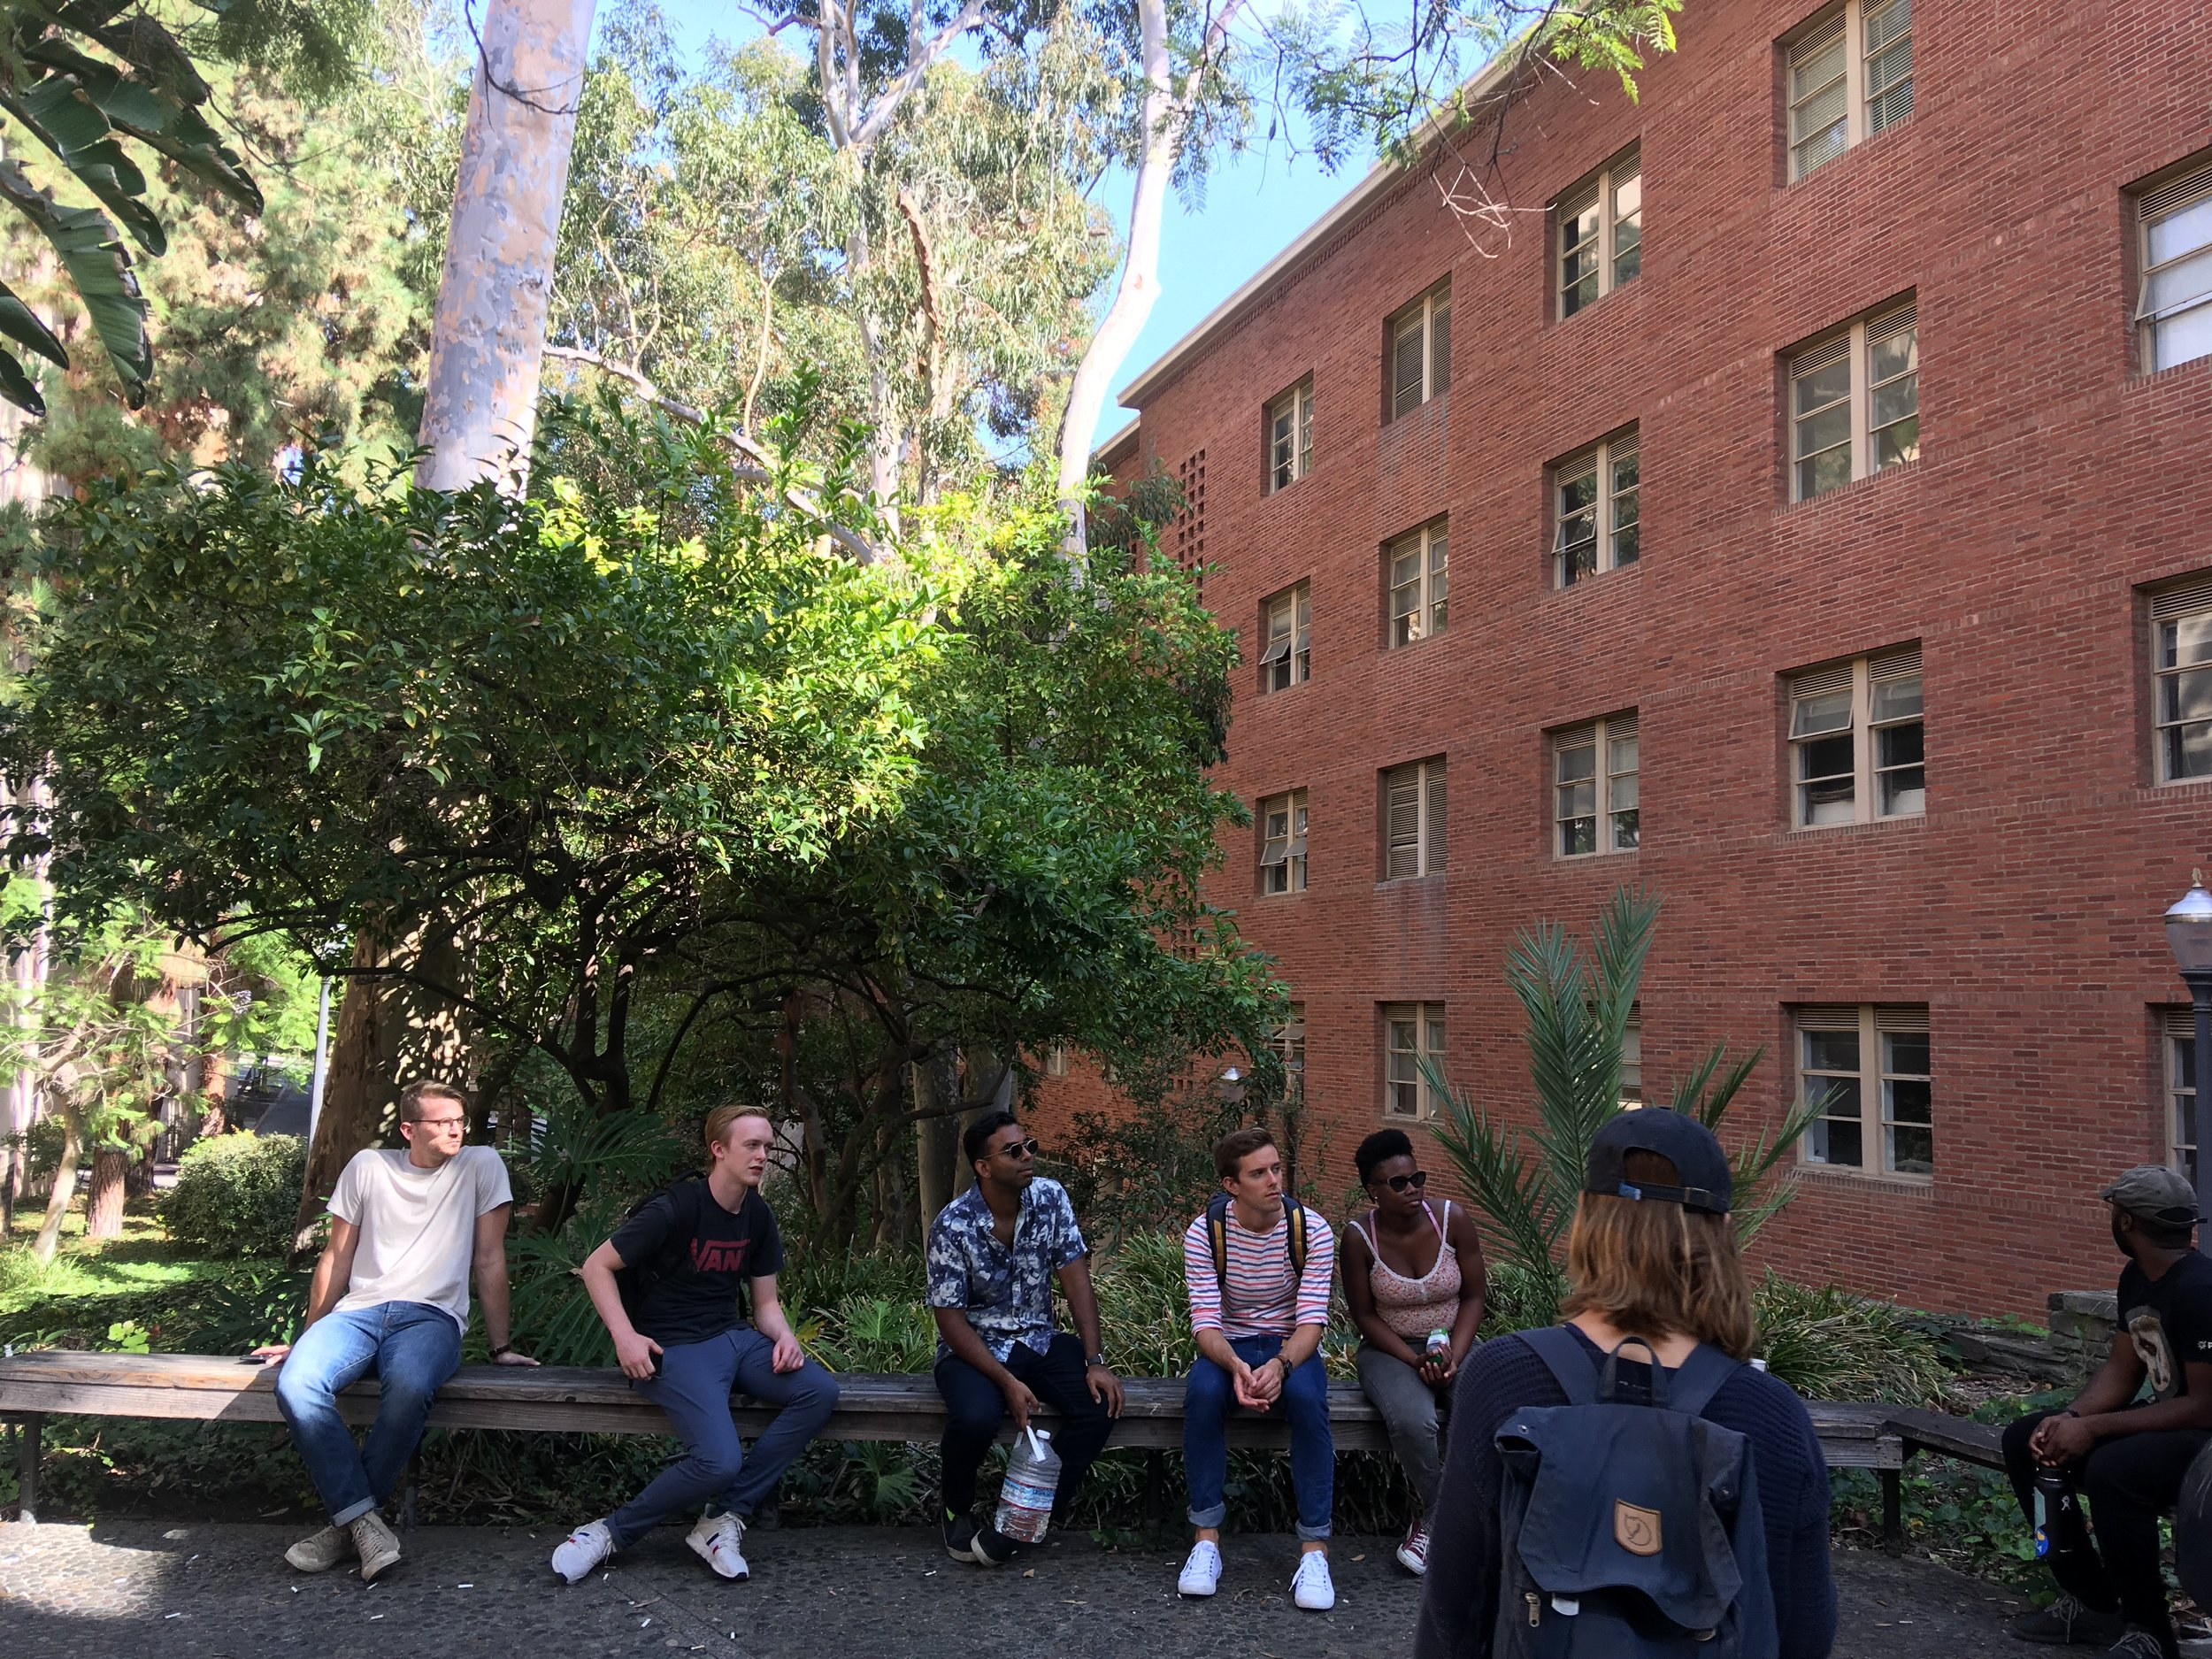 October 12, 2018: Field Lab visit of UCLA Sustainability